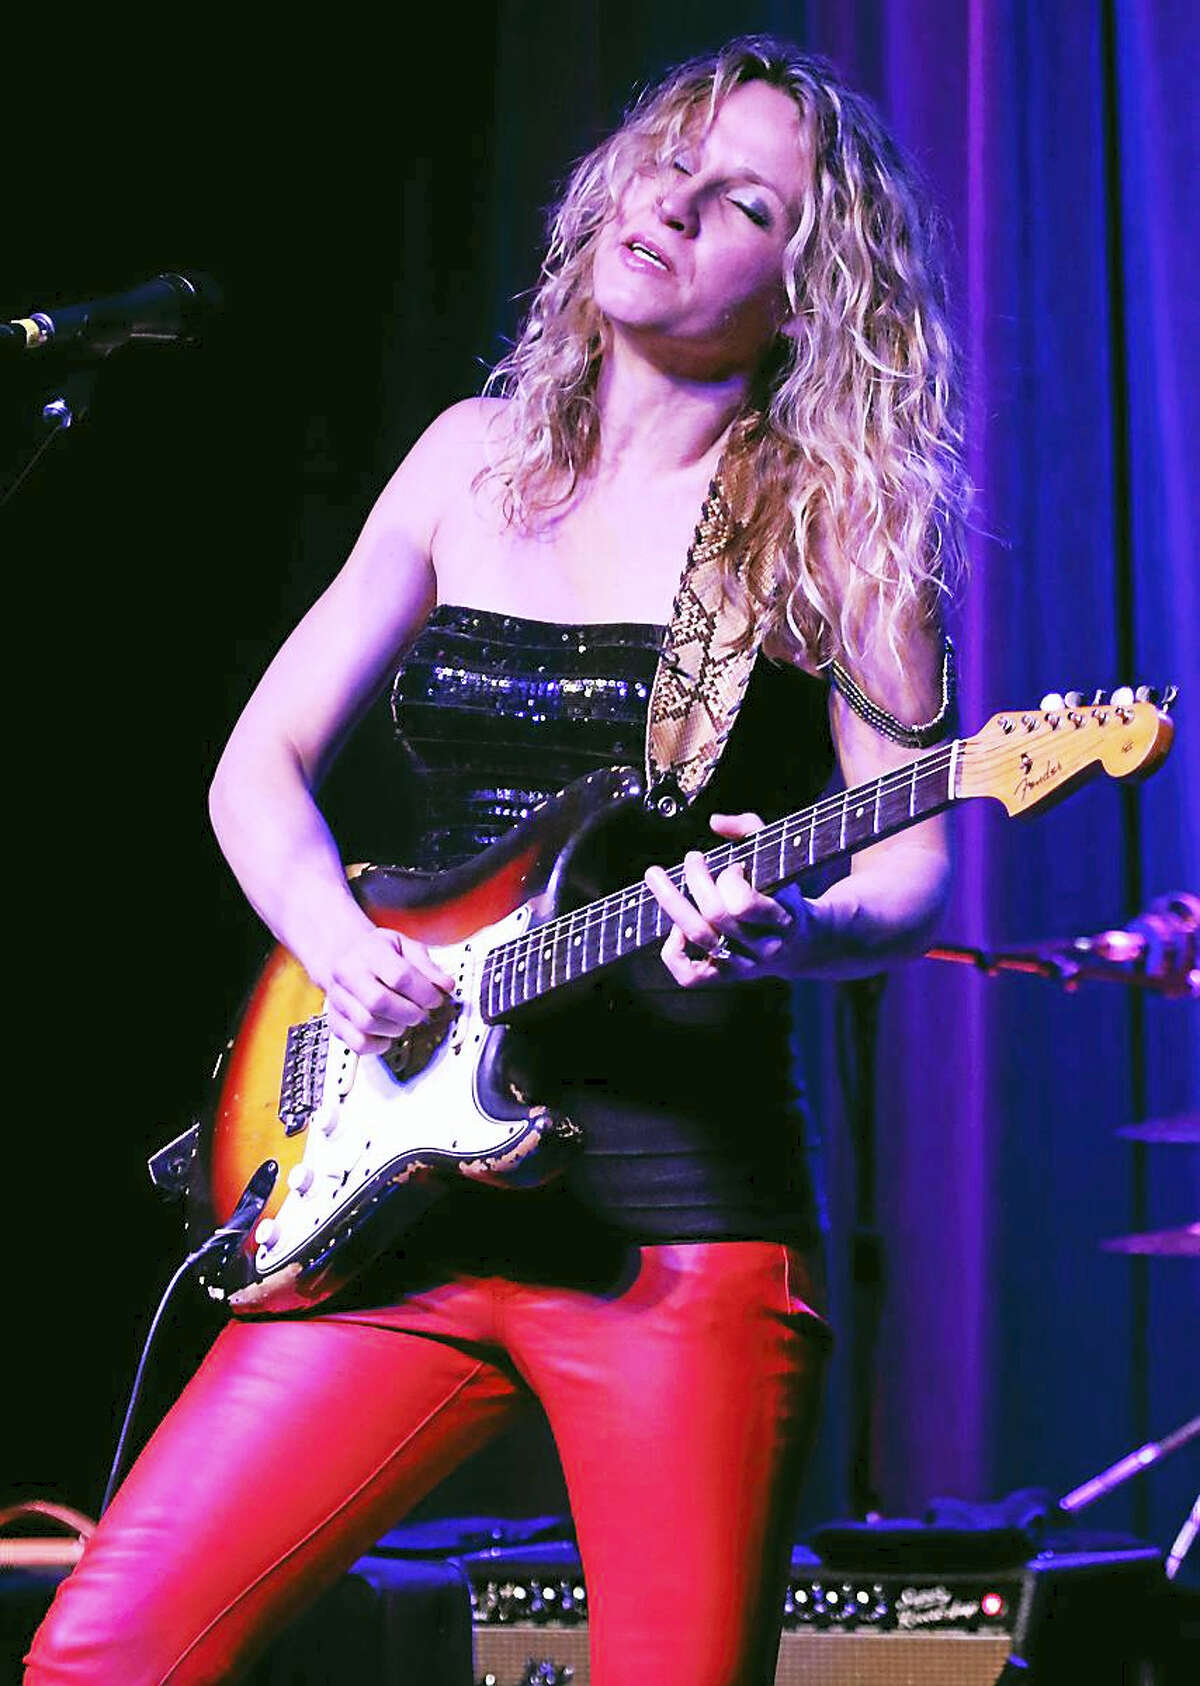 """Photo by John AtashianBlues guitarist Ana Popovic is shown performing during her appearance at Stage One in Fairfield on Feb. 12. The Serbian guitarist played songs from her latest album """"Blue Room"""" and announce she will be releasing a three cd package of all new material in May. To learn more about Ana you can visit www.anapopovic.com"""